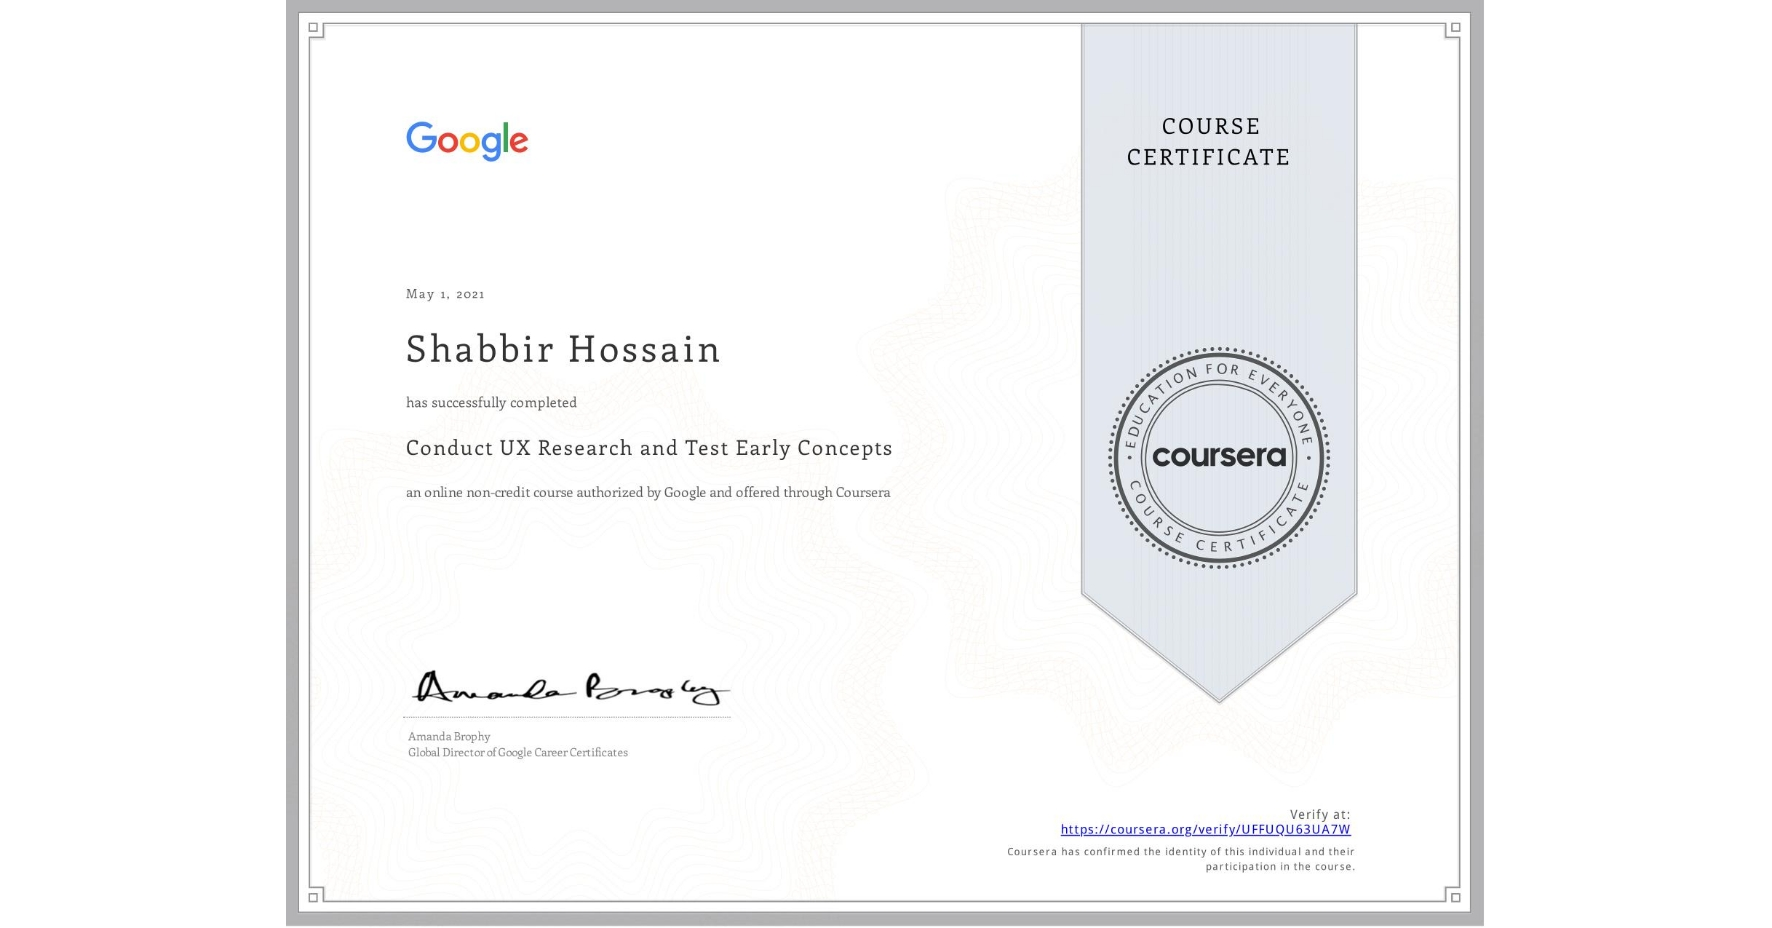 View certificate for Shabbir Hossain, Conduct UX Research and Test Early Concepts, an online non-credit course authorized by Google and offered through Coursera